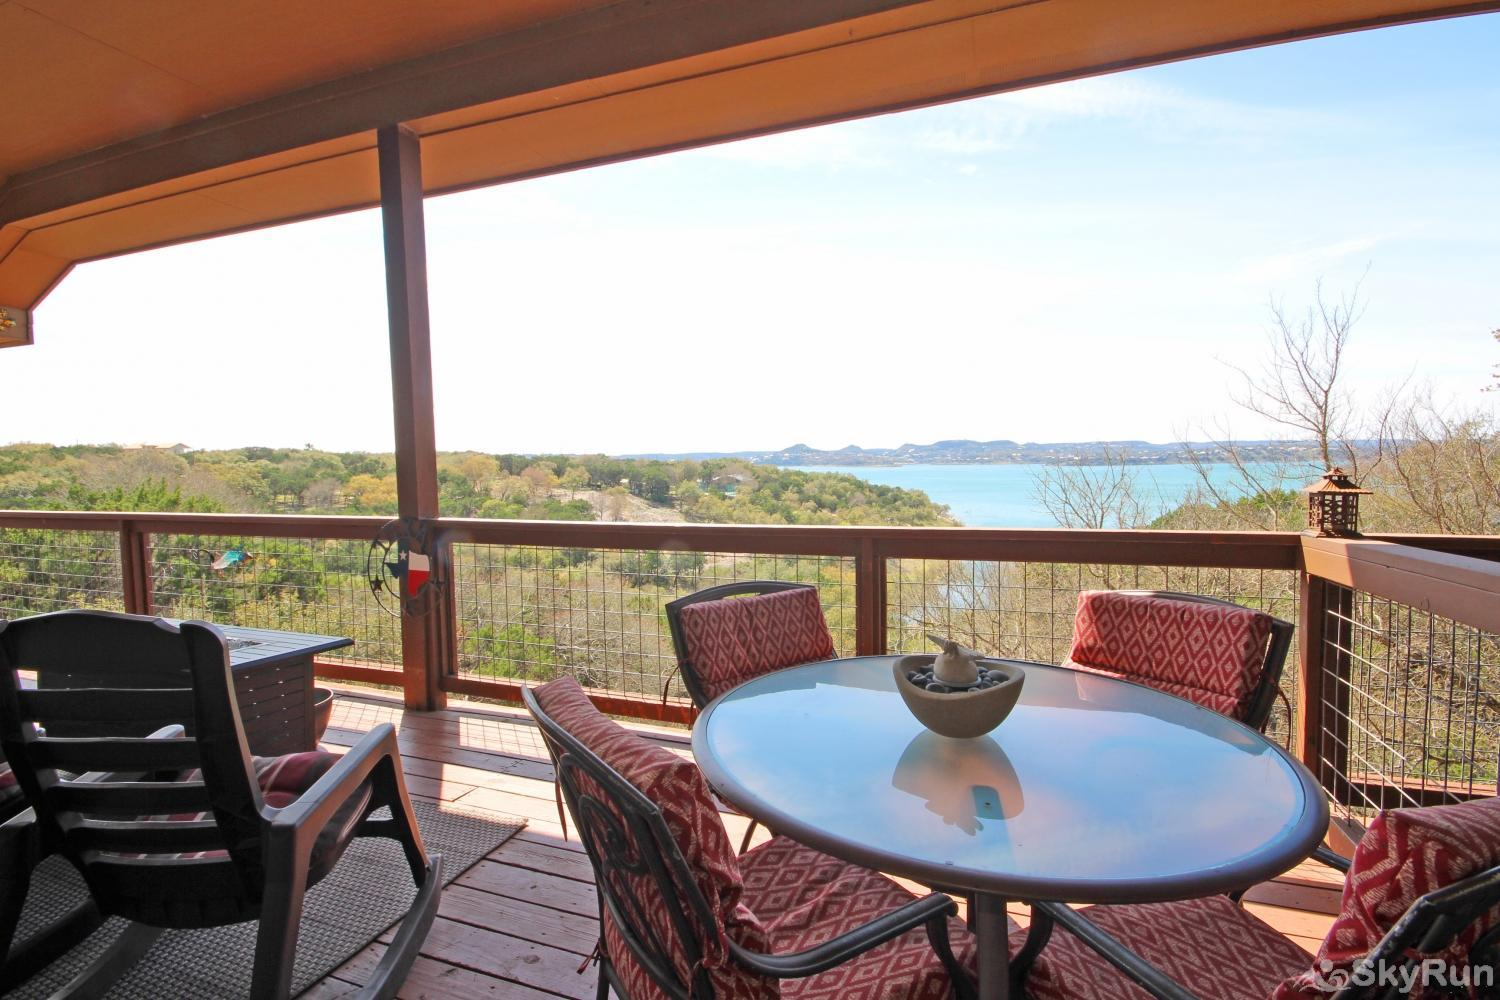 BELLA'S COVE Top deck with sweeping views and comfortable seating